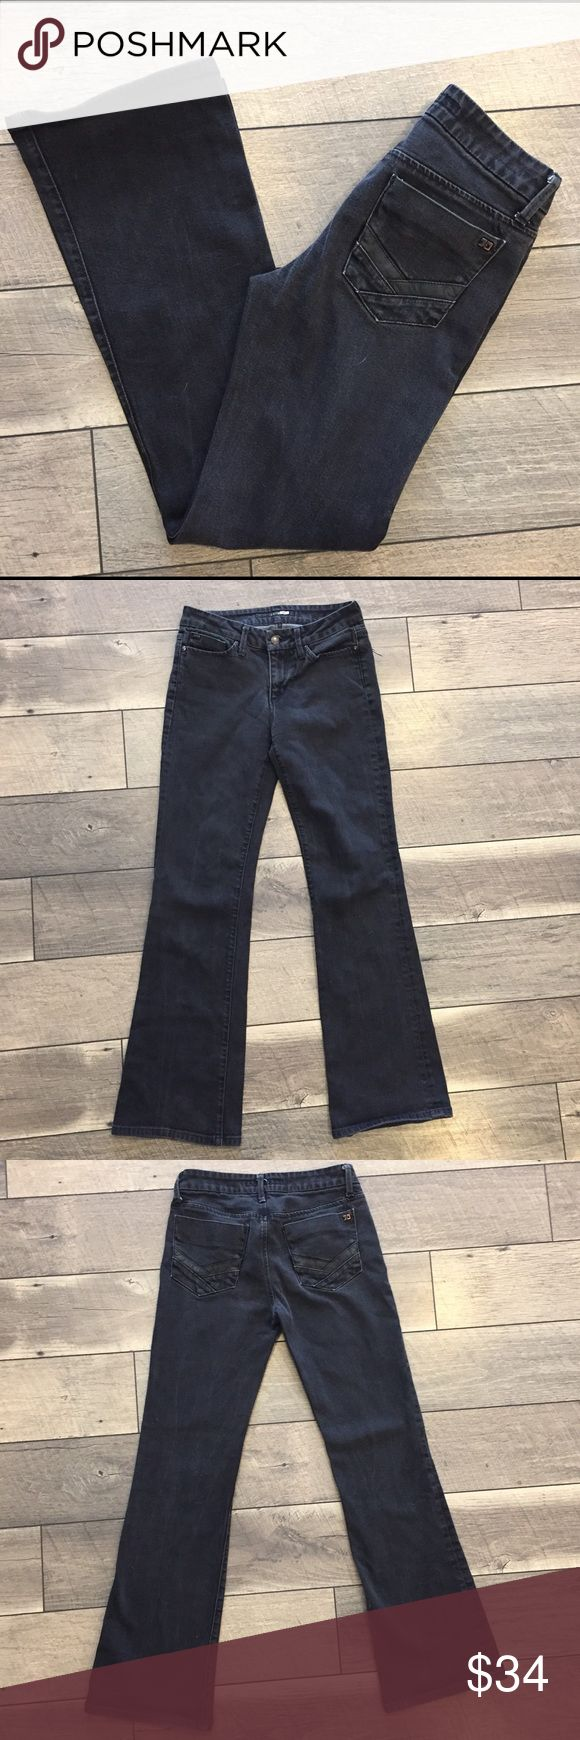 """Joe's Jeans """"The Muse"""" - Black Bootcut Jeans - 26 Black jeans are a staple in every girl's closet and this pair by Joe's Jeans will not disappoint!   Excellent used condition with some minor fading (see pics). Size 26. Fit: """"The Muse"""". These have some stretch. Inseam of 30"""". Joe's Jeans Jeans Boot Cut"""